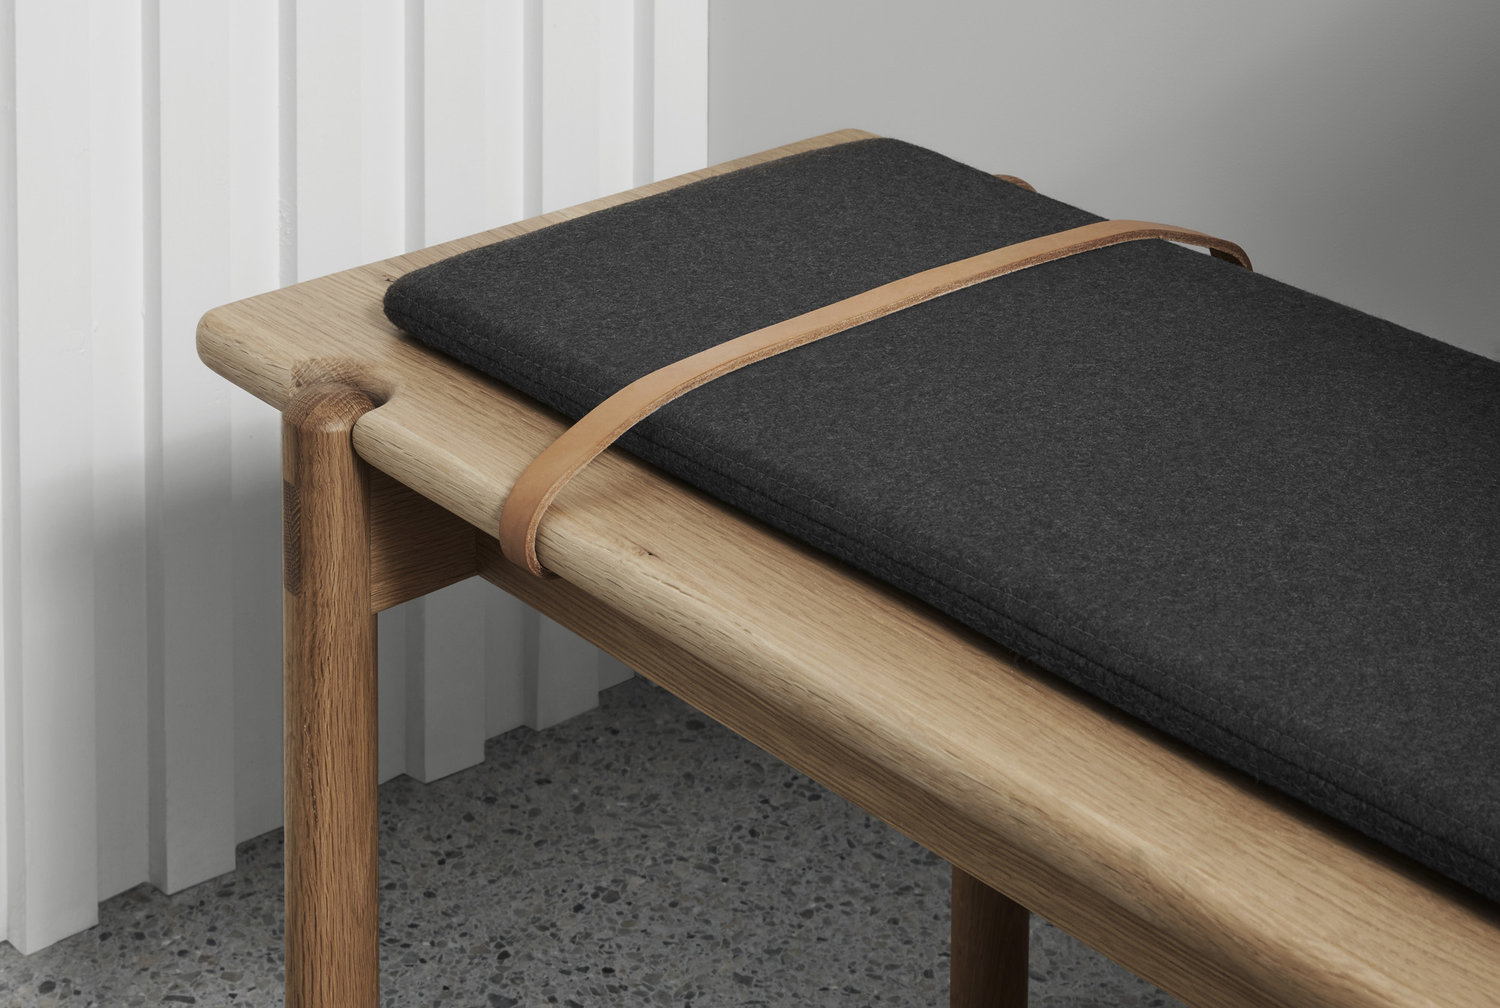 Brunswick designer and maker Nicholas McDonald of MBM - bench seat detailing and leather strap